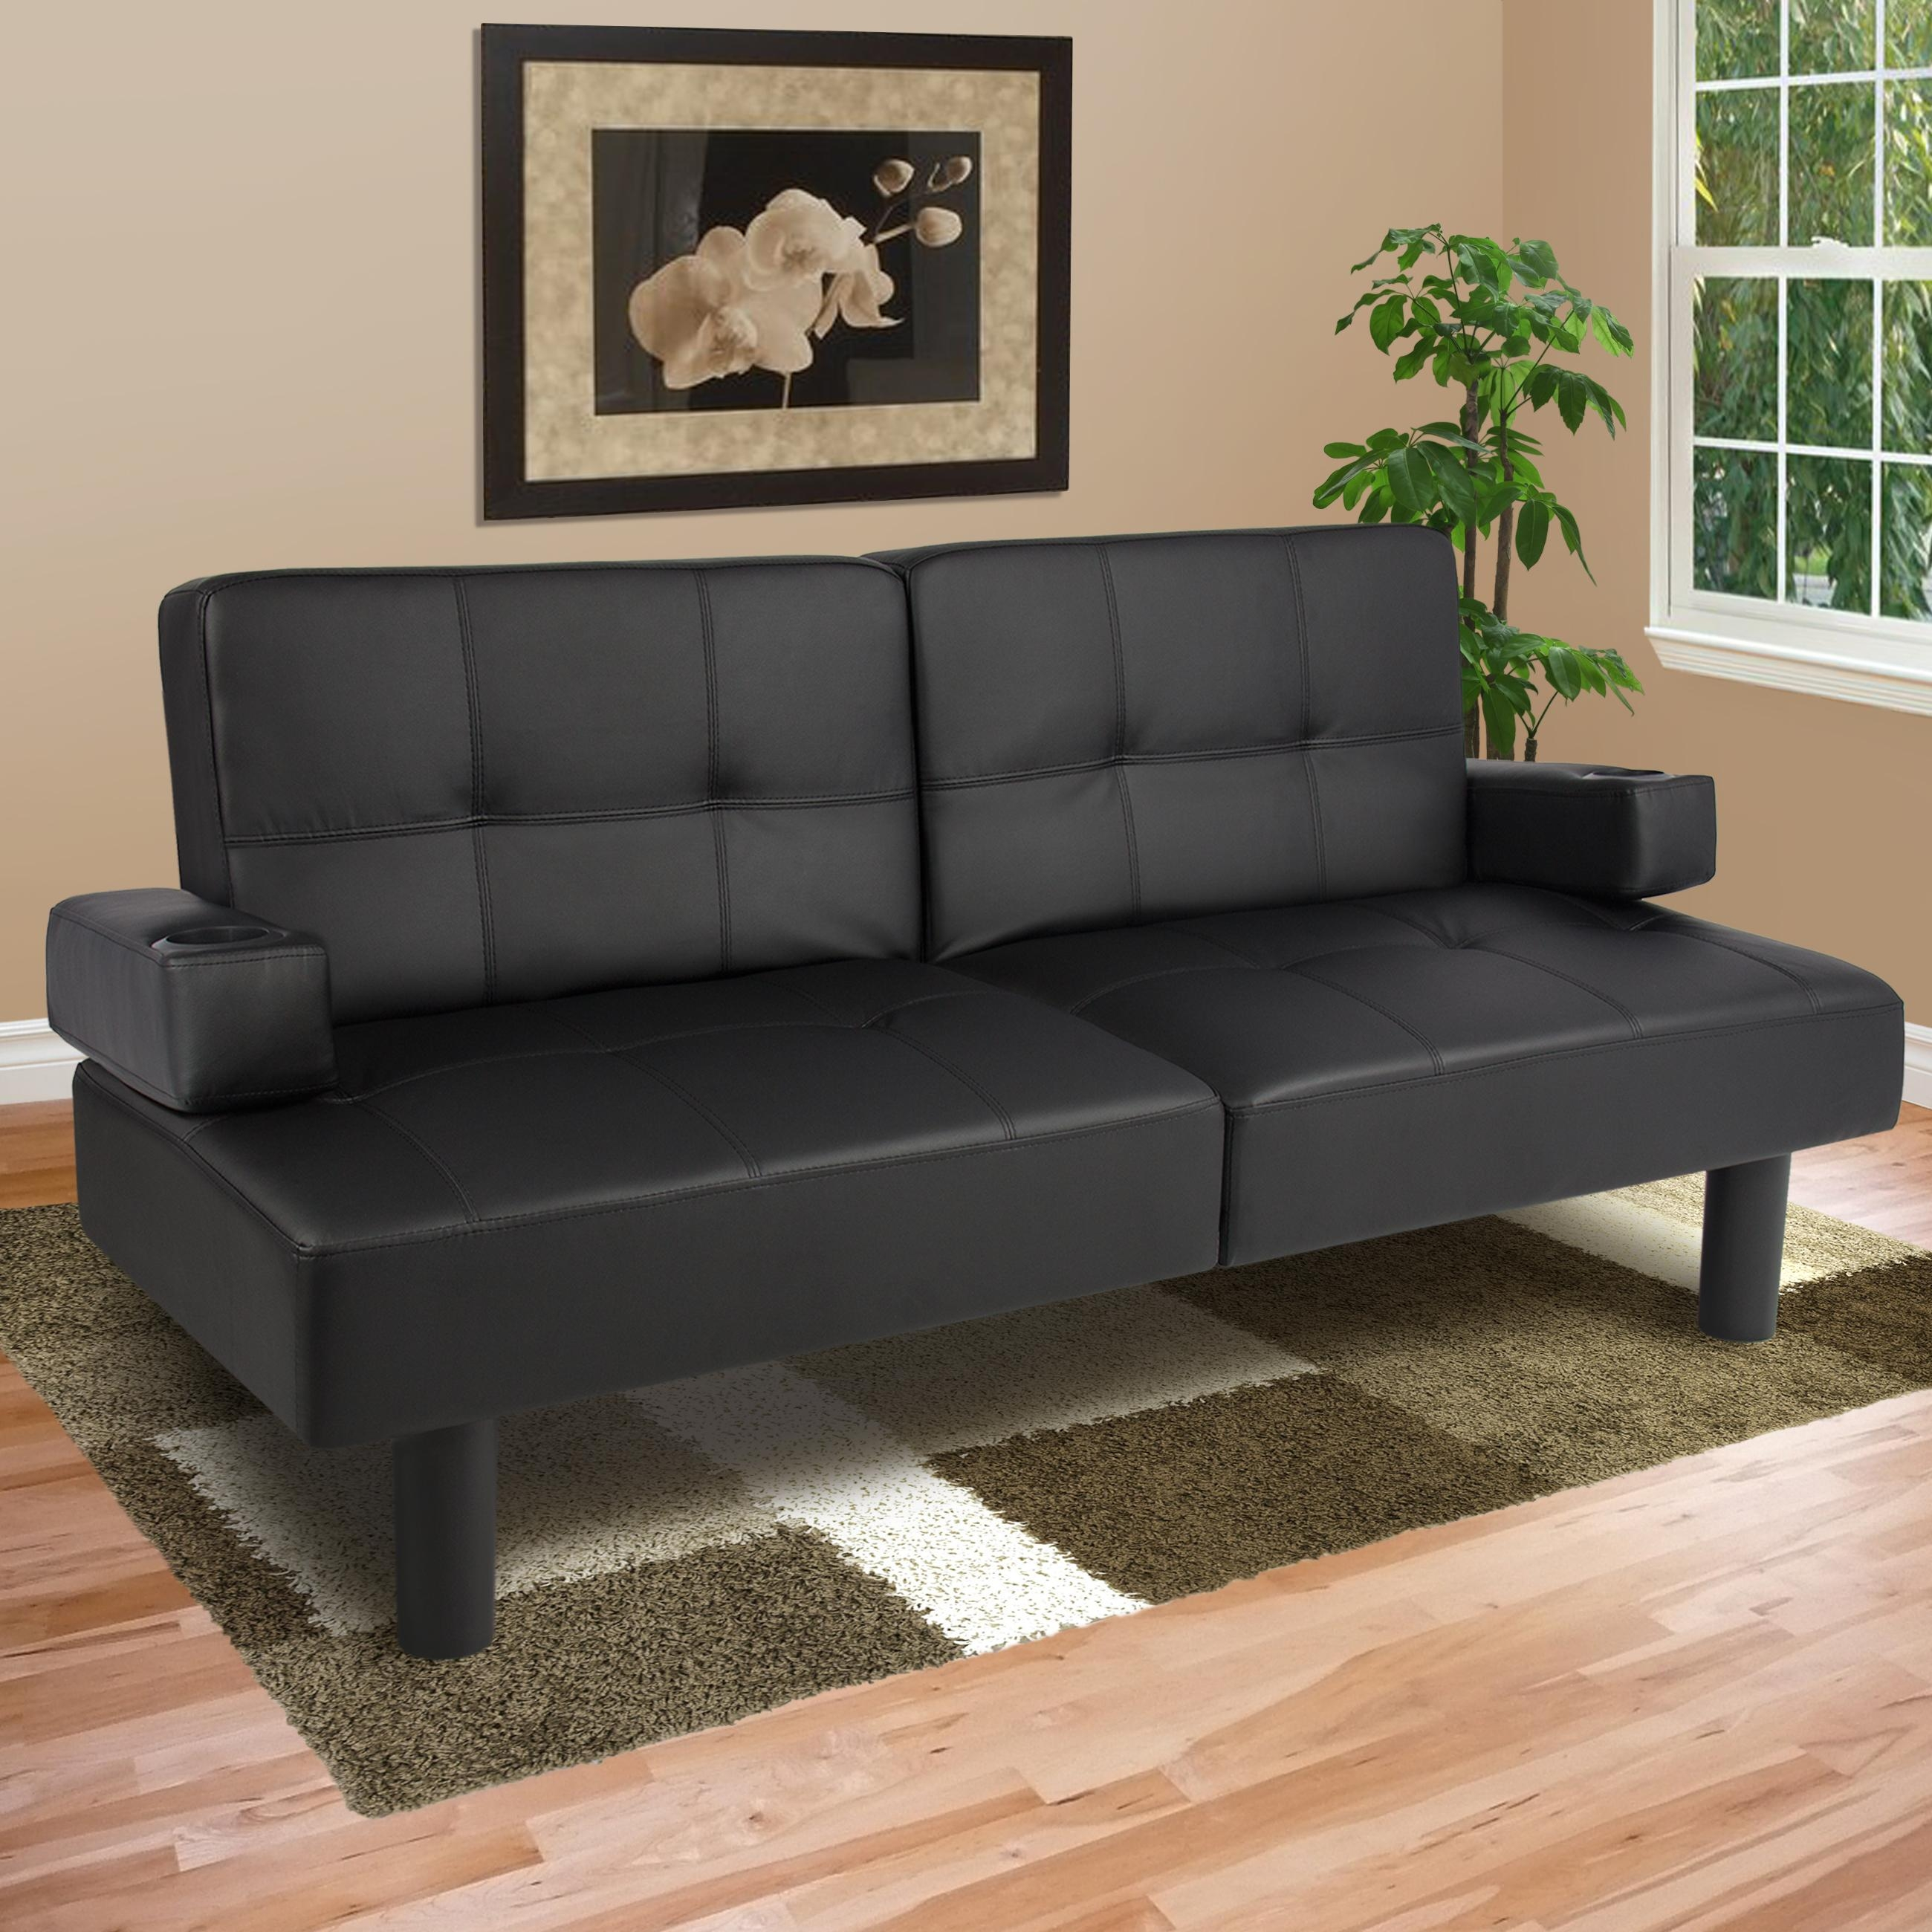 20 Best Target Couch Beds